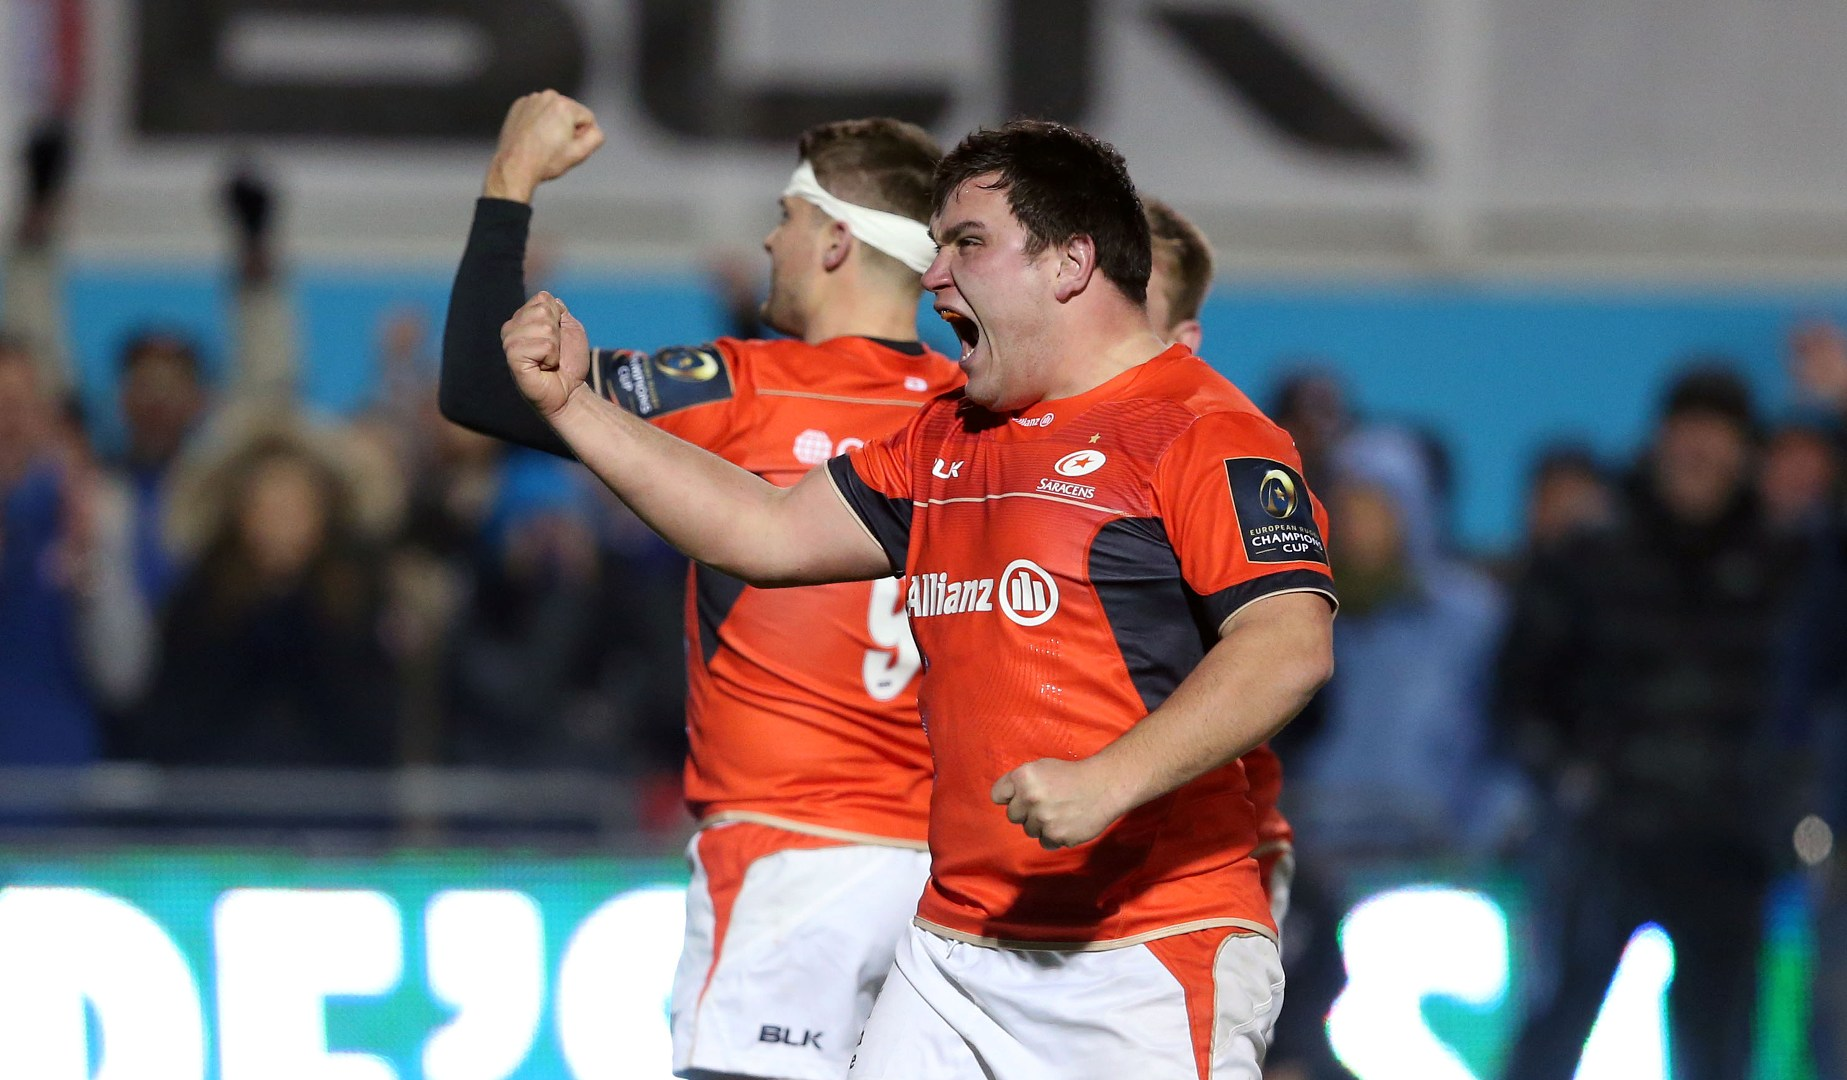 LionsWatch: George and Maitland help Saracens to eight-try showing